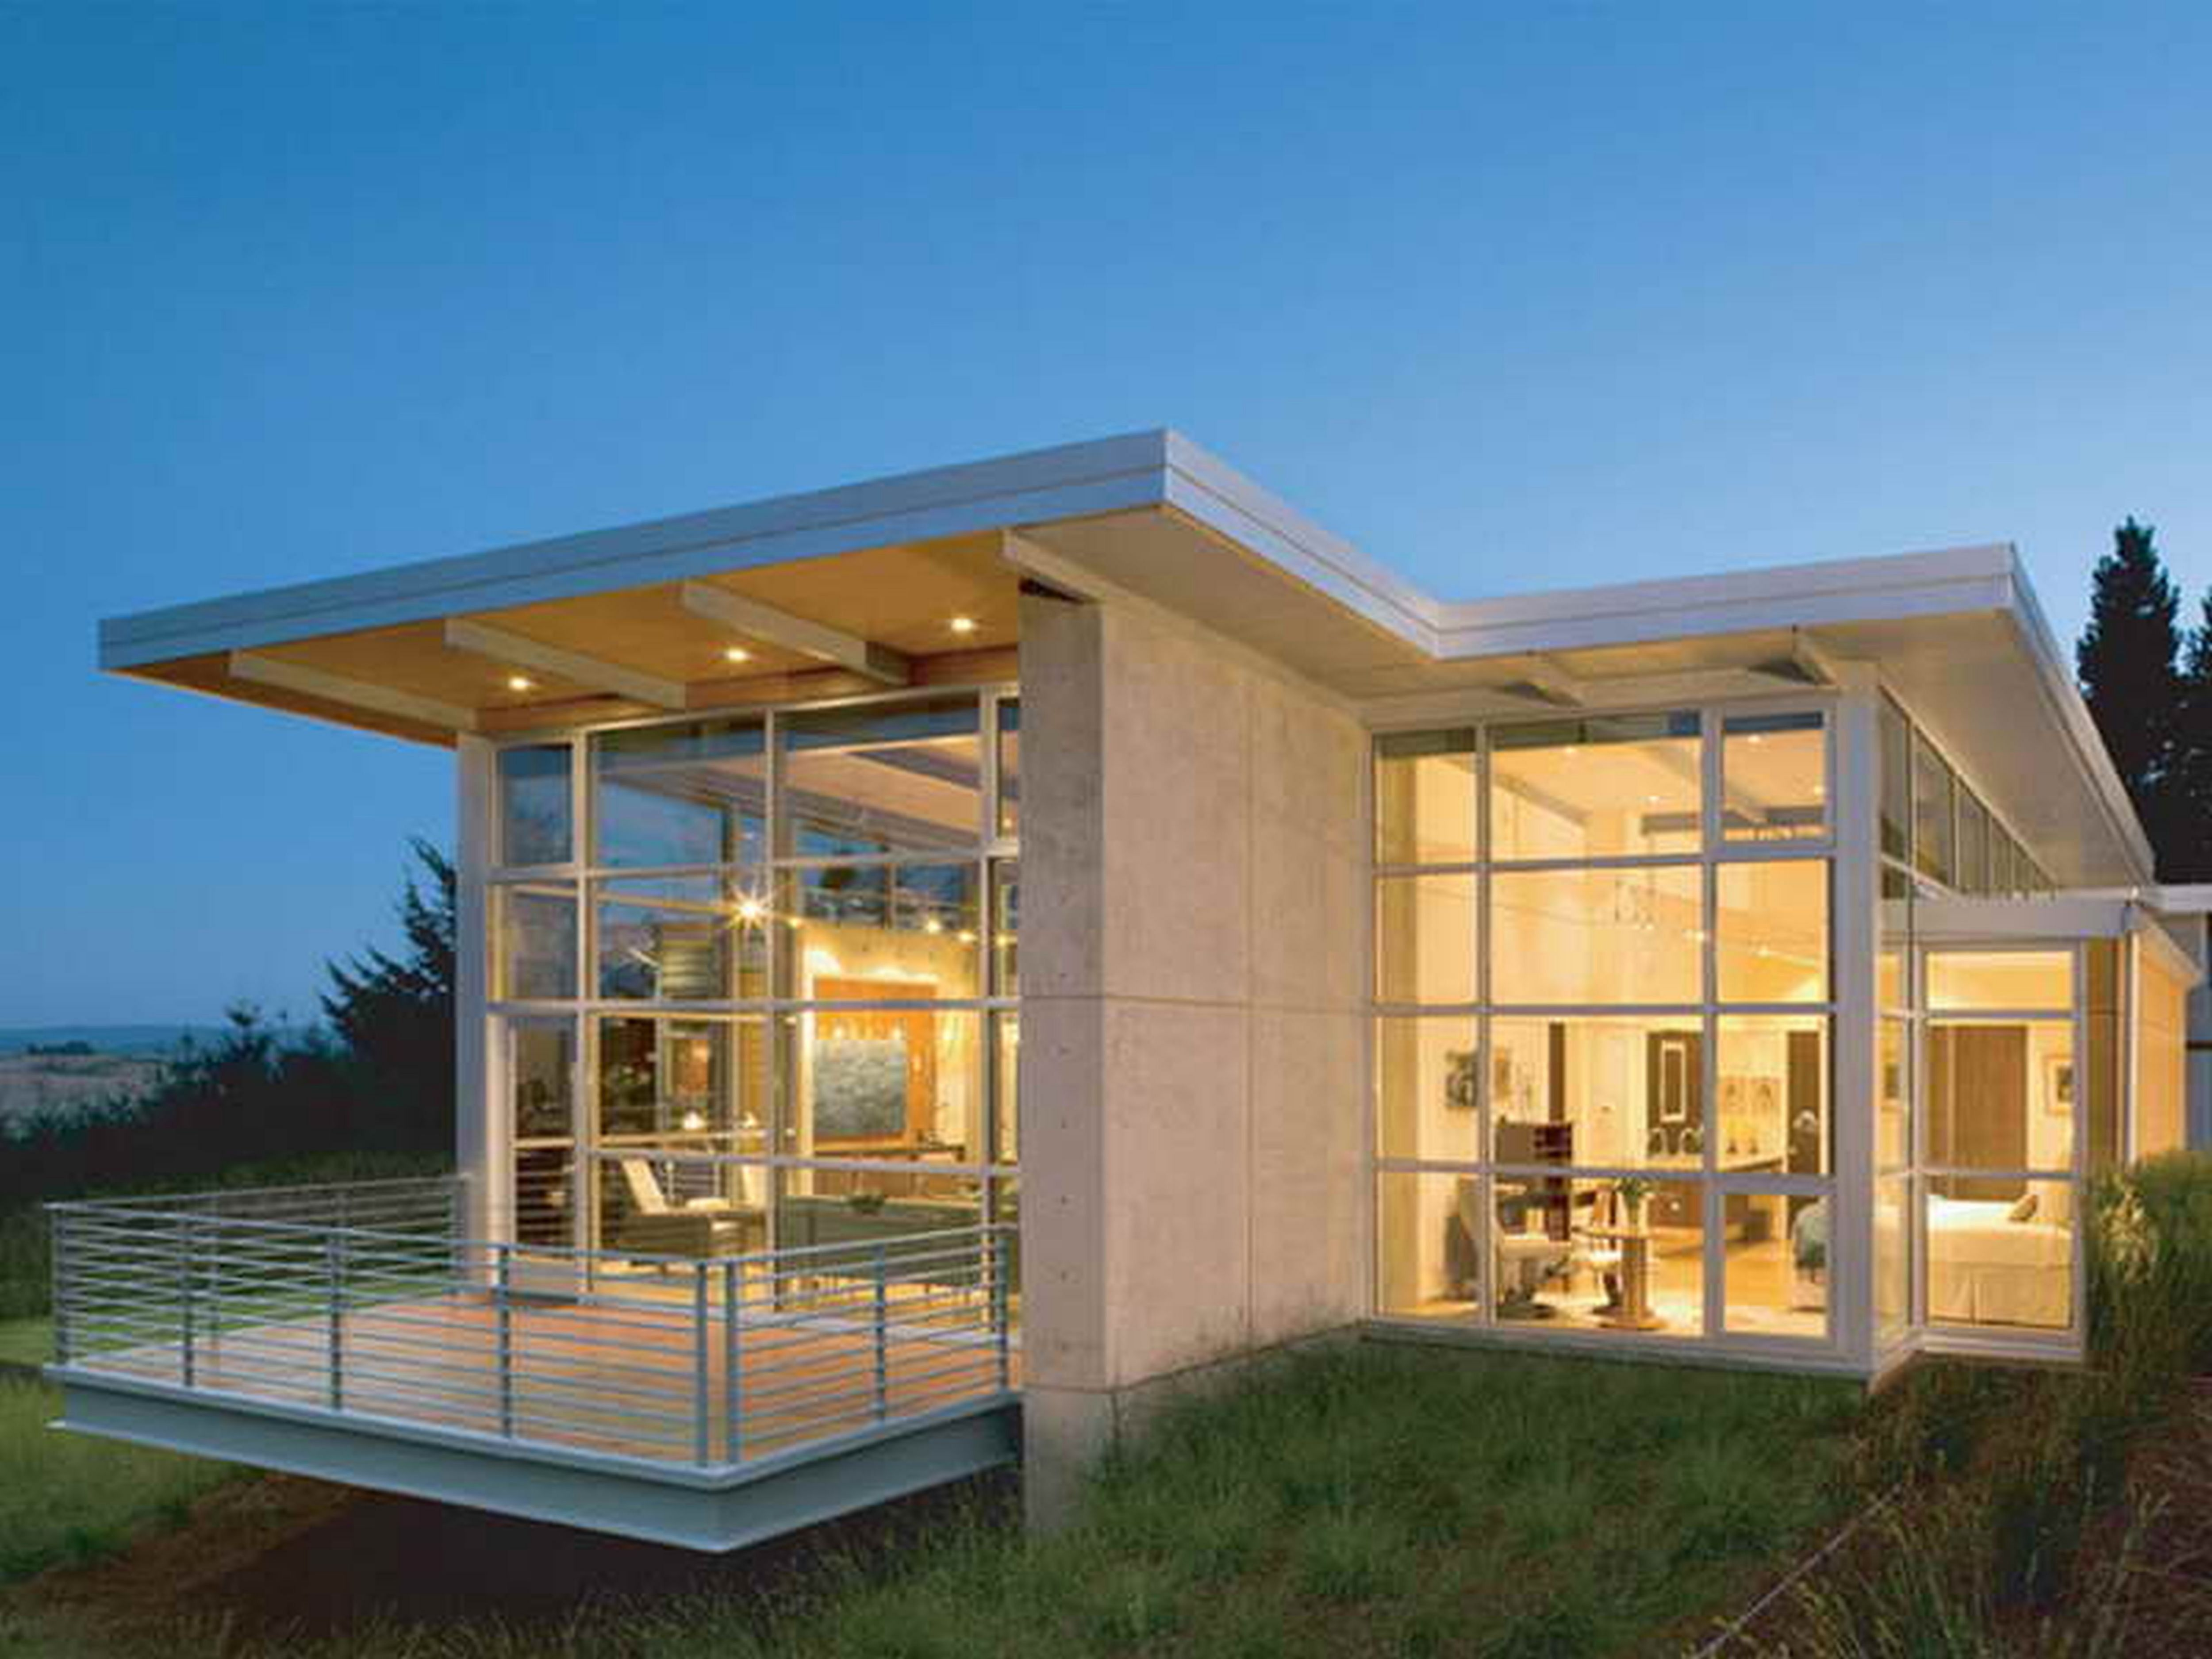 37 The Most Popular Modern Tiny Houses Designs That People Look For Decor It S Modern Exterior House Designs Contemporary House Plans Architectural House Plans